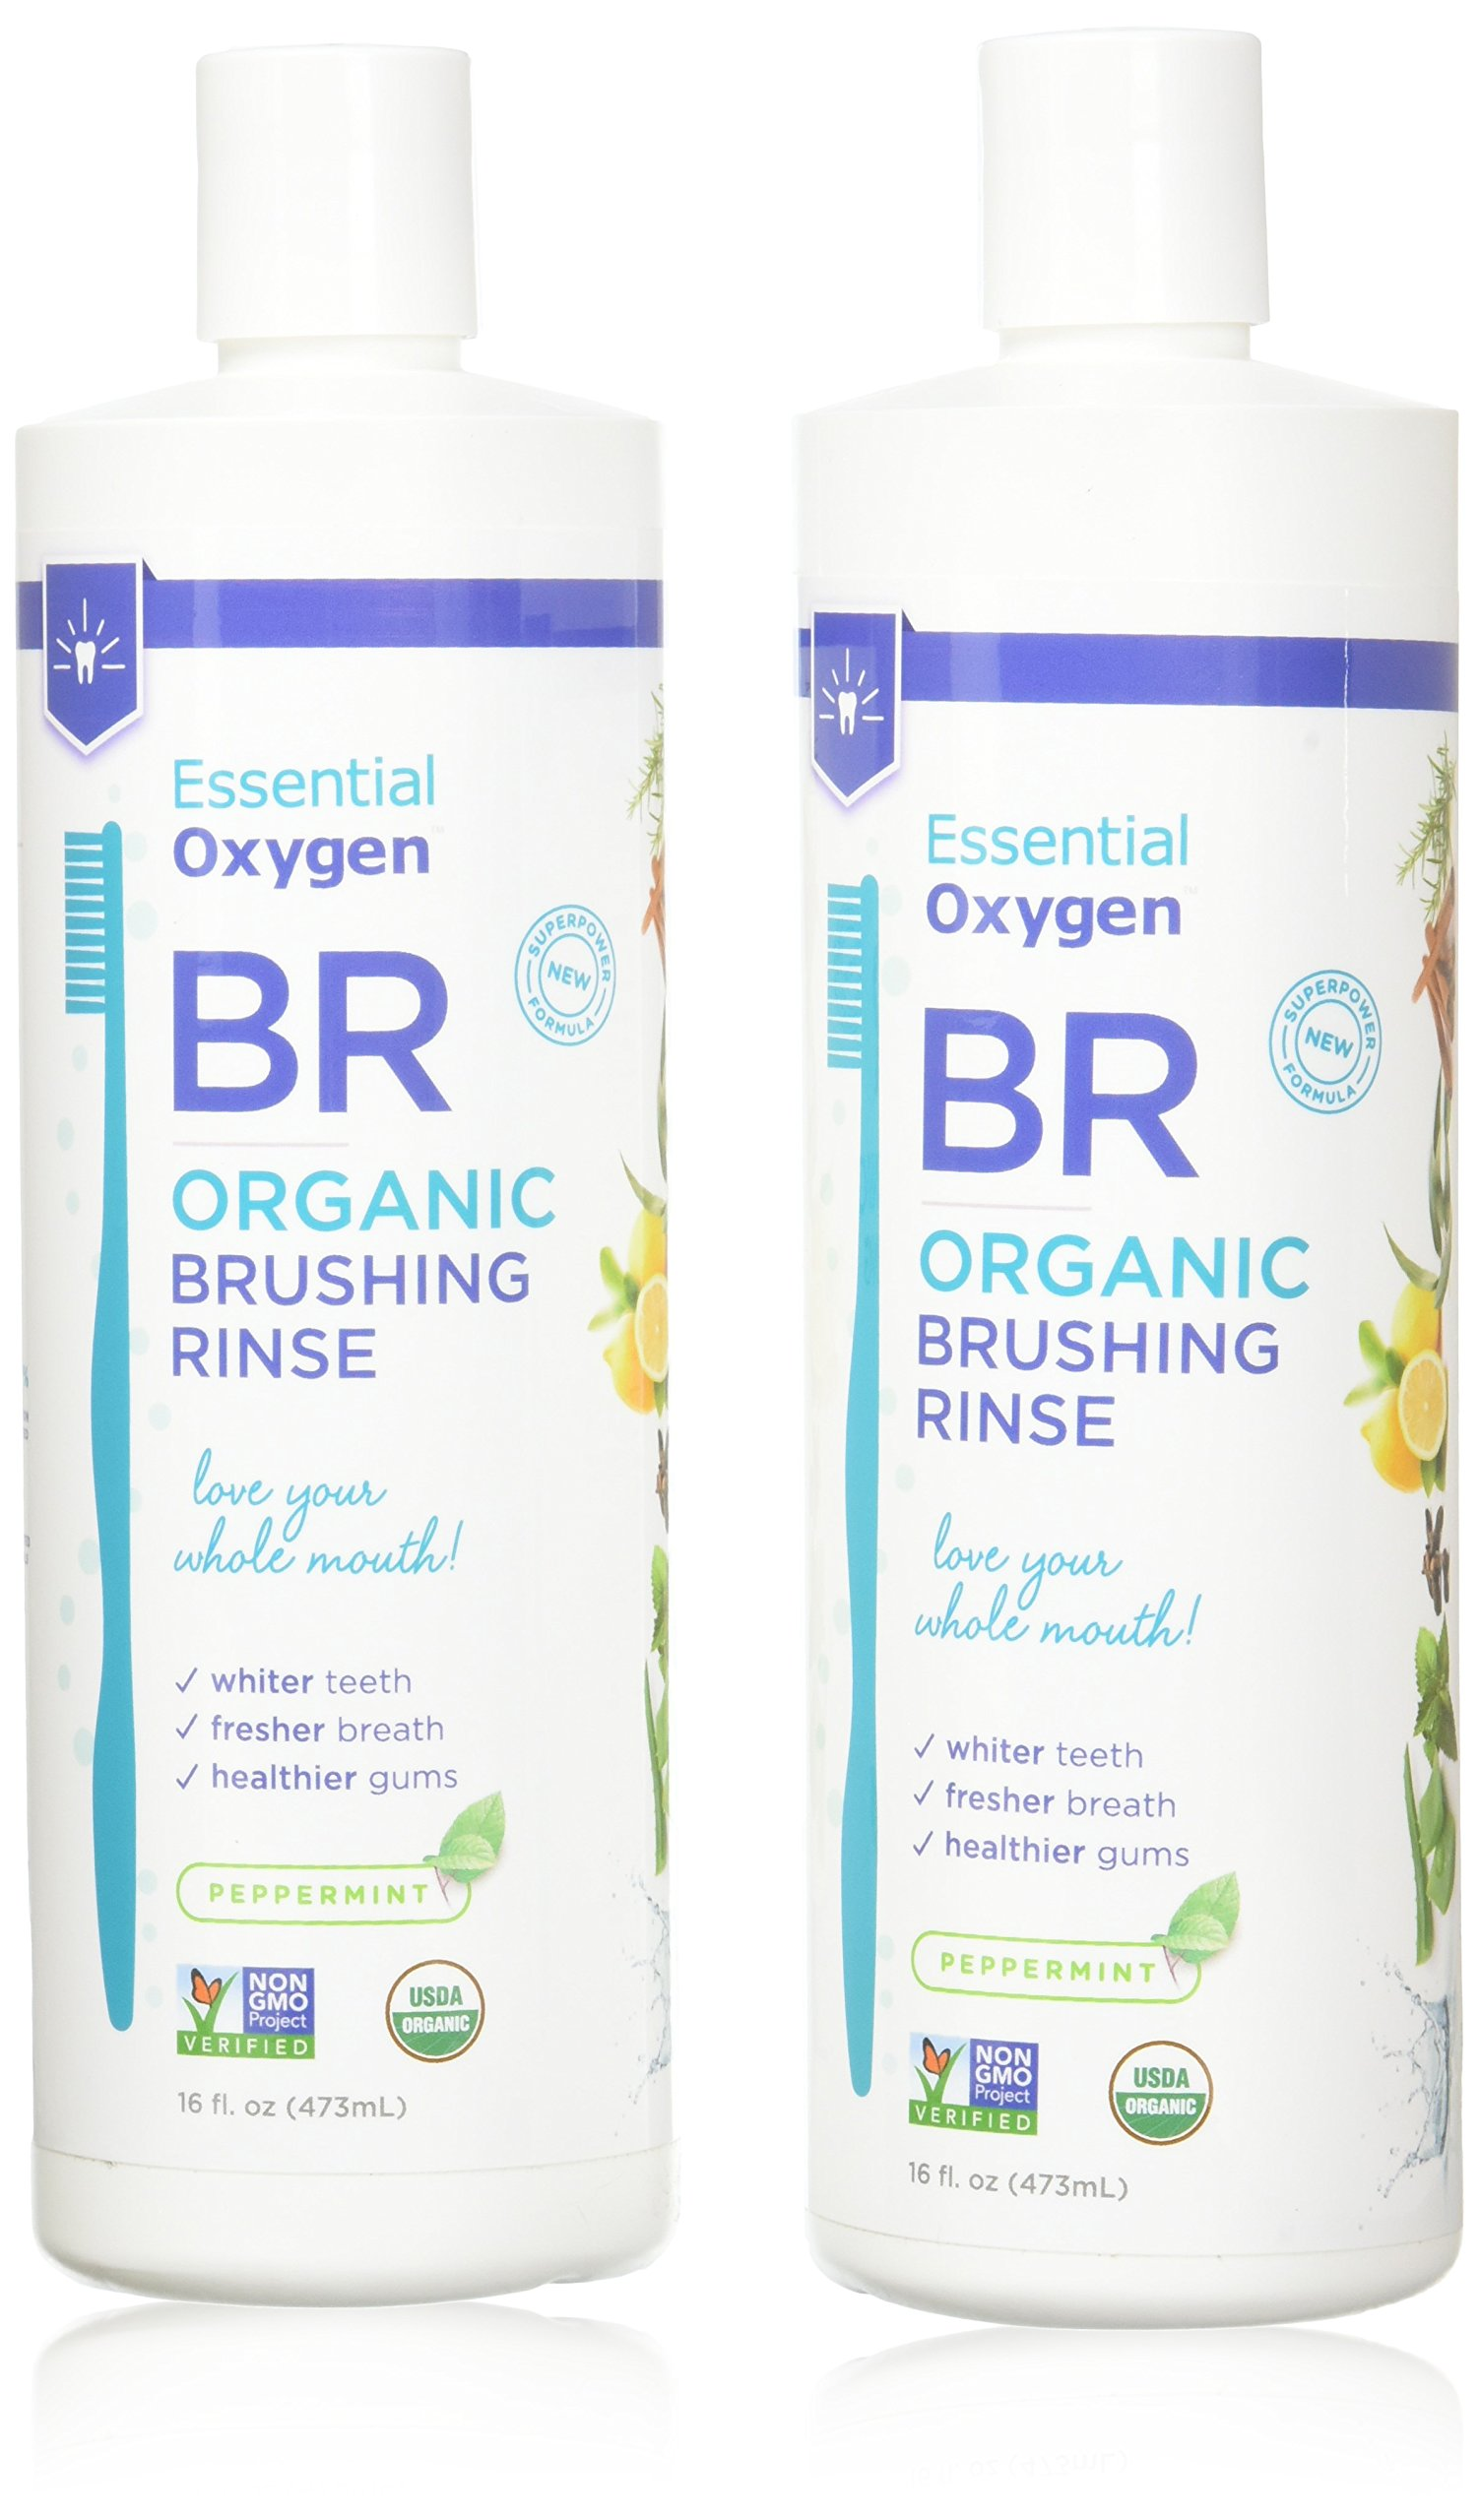 Essential Oxygen Plus Peppermint Brushing Rinse, 16 Ounce - 2 per case.